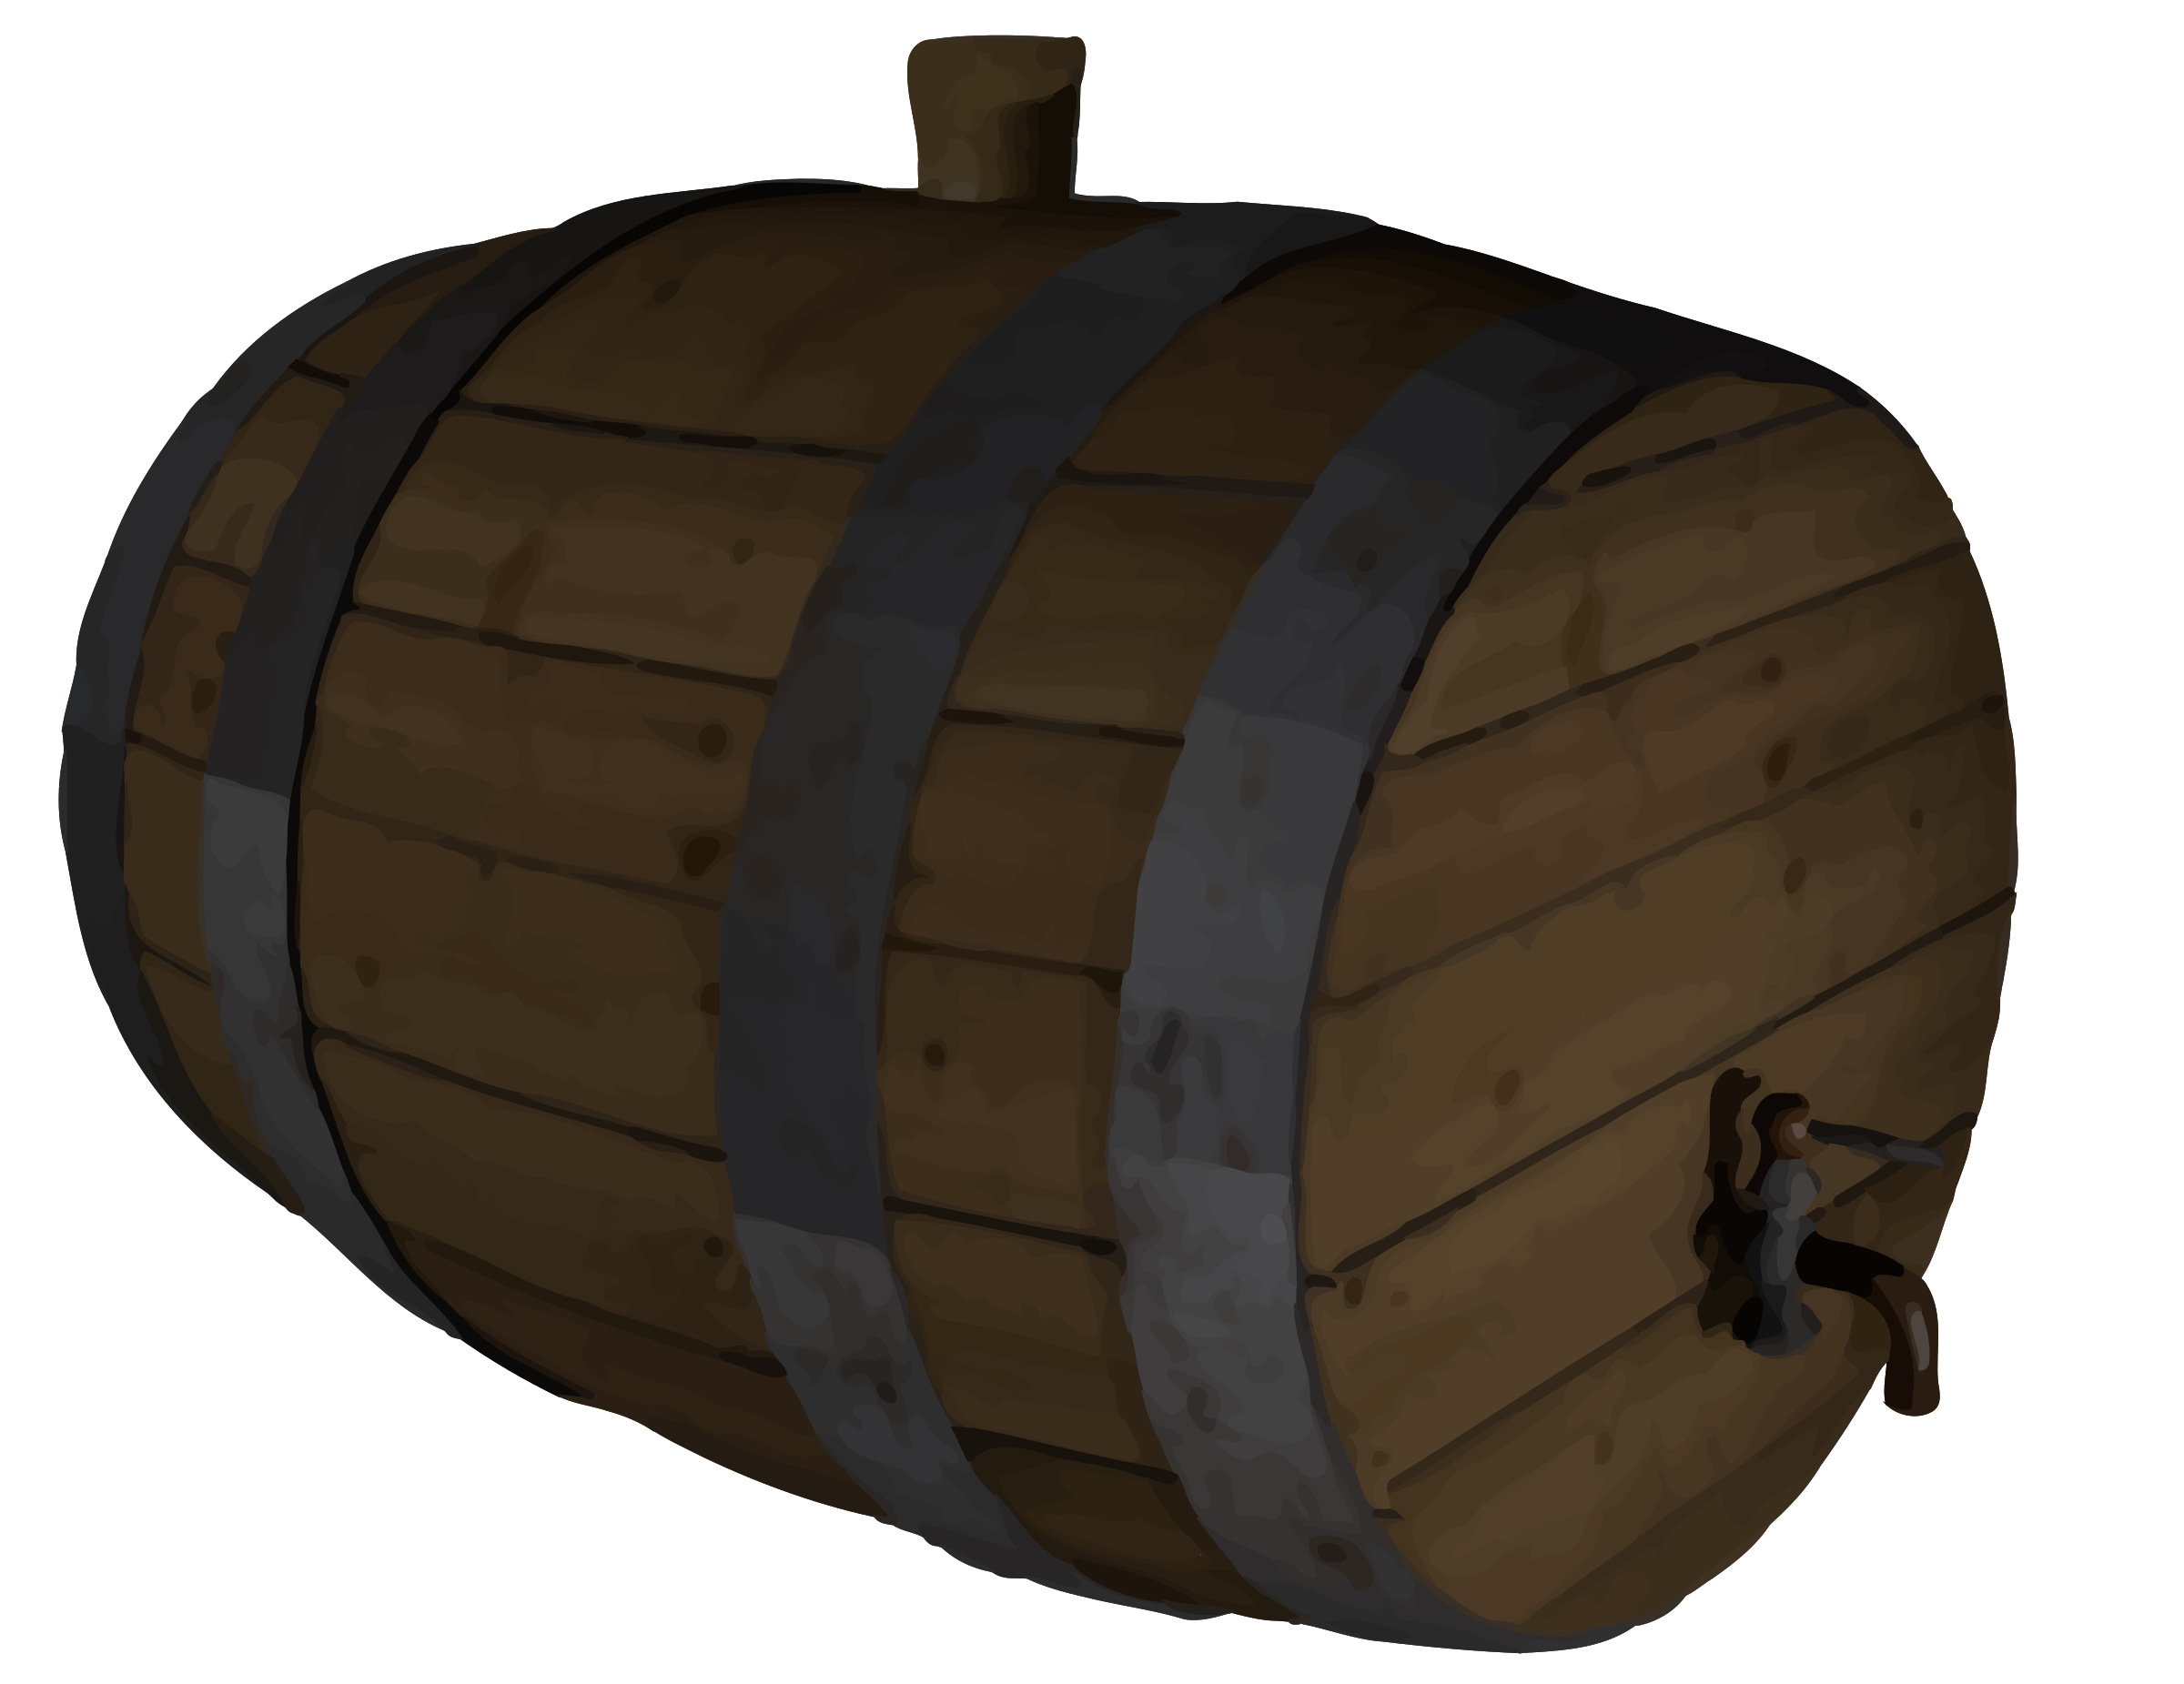 Beer barrel by Firkin